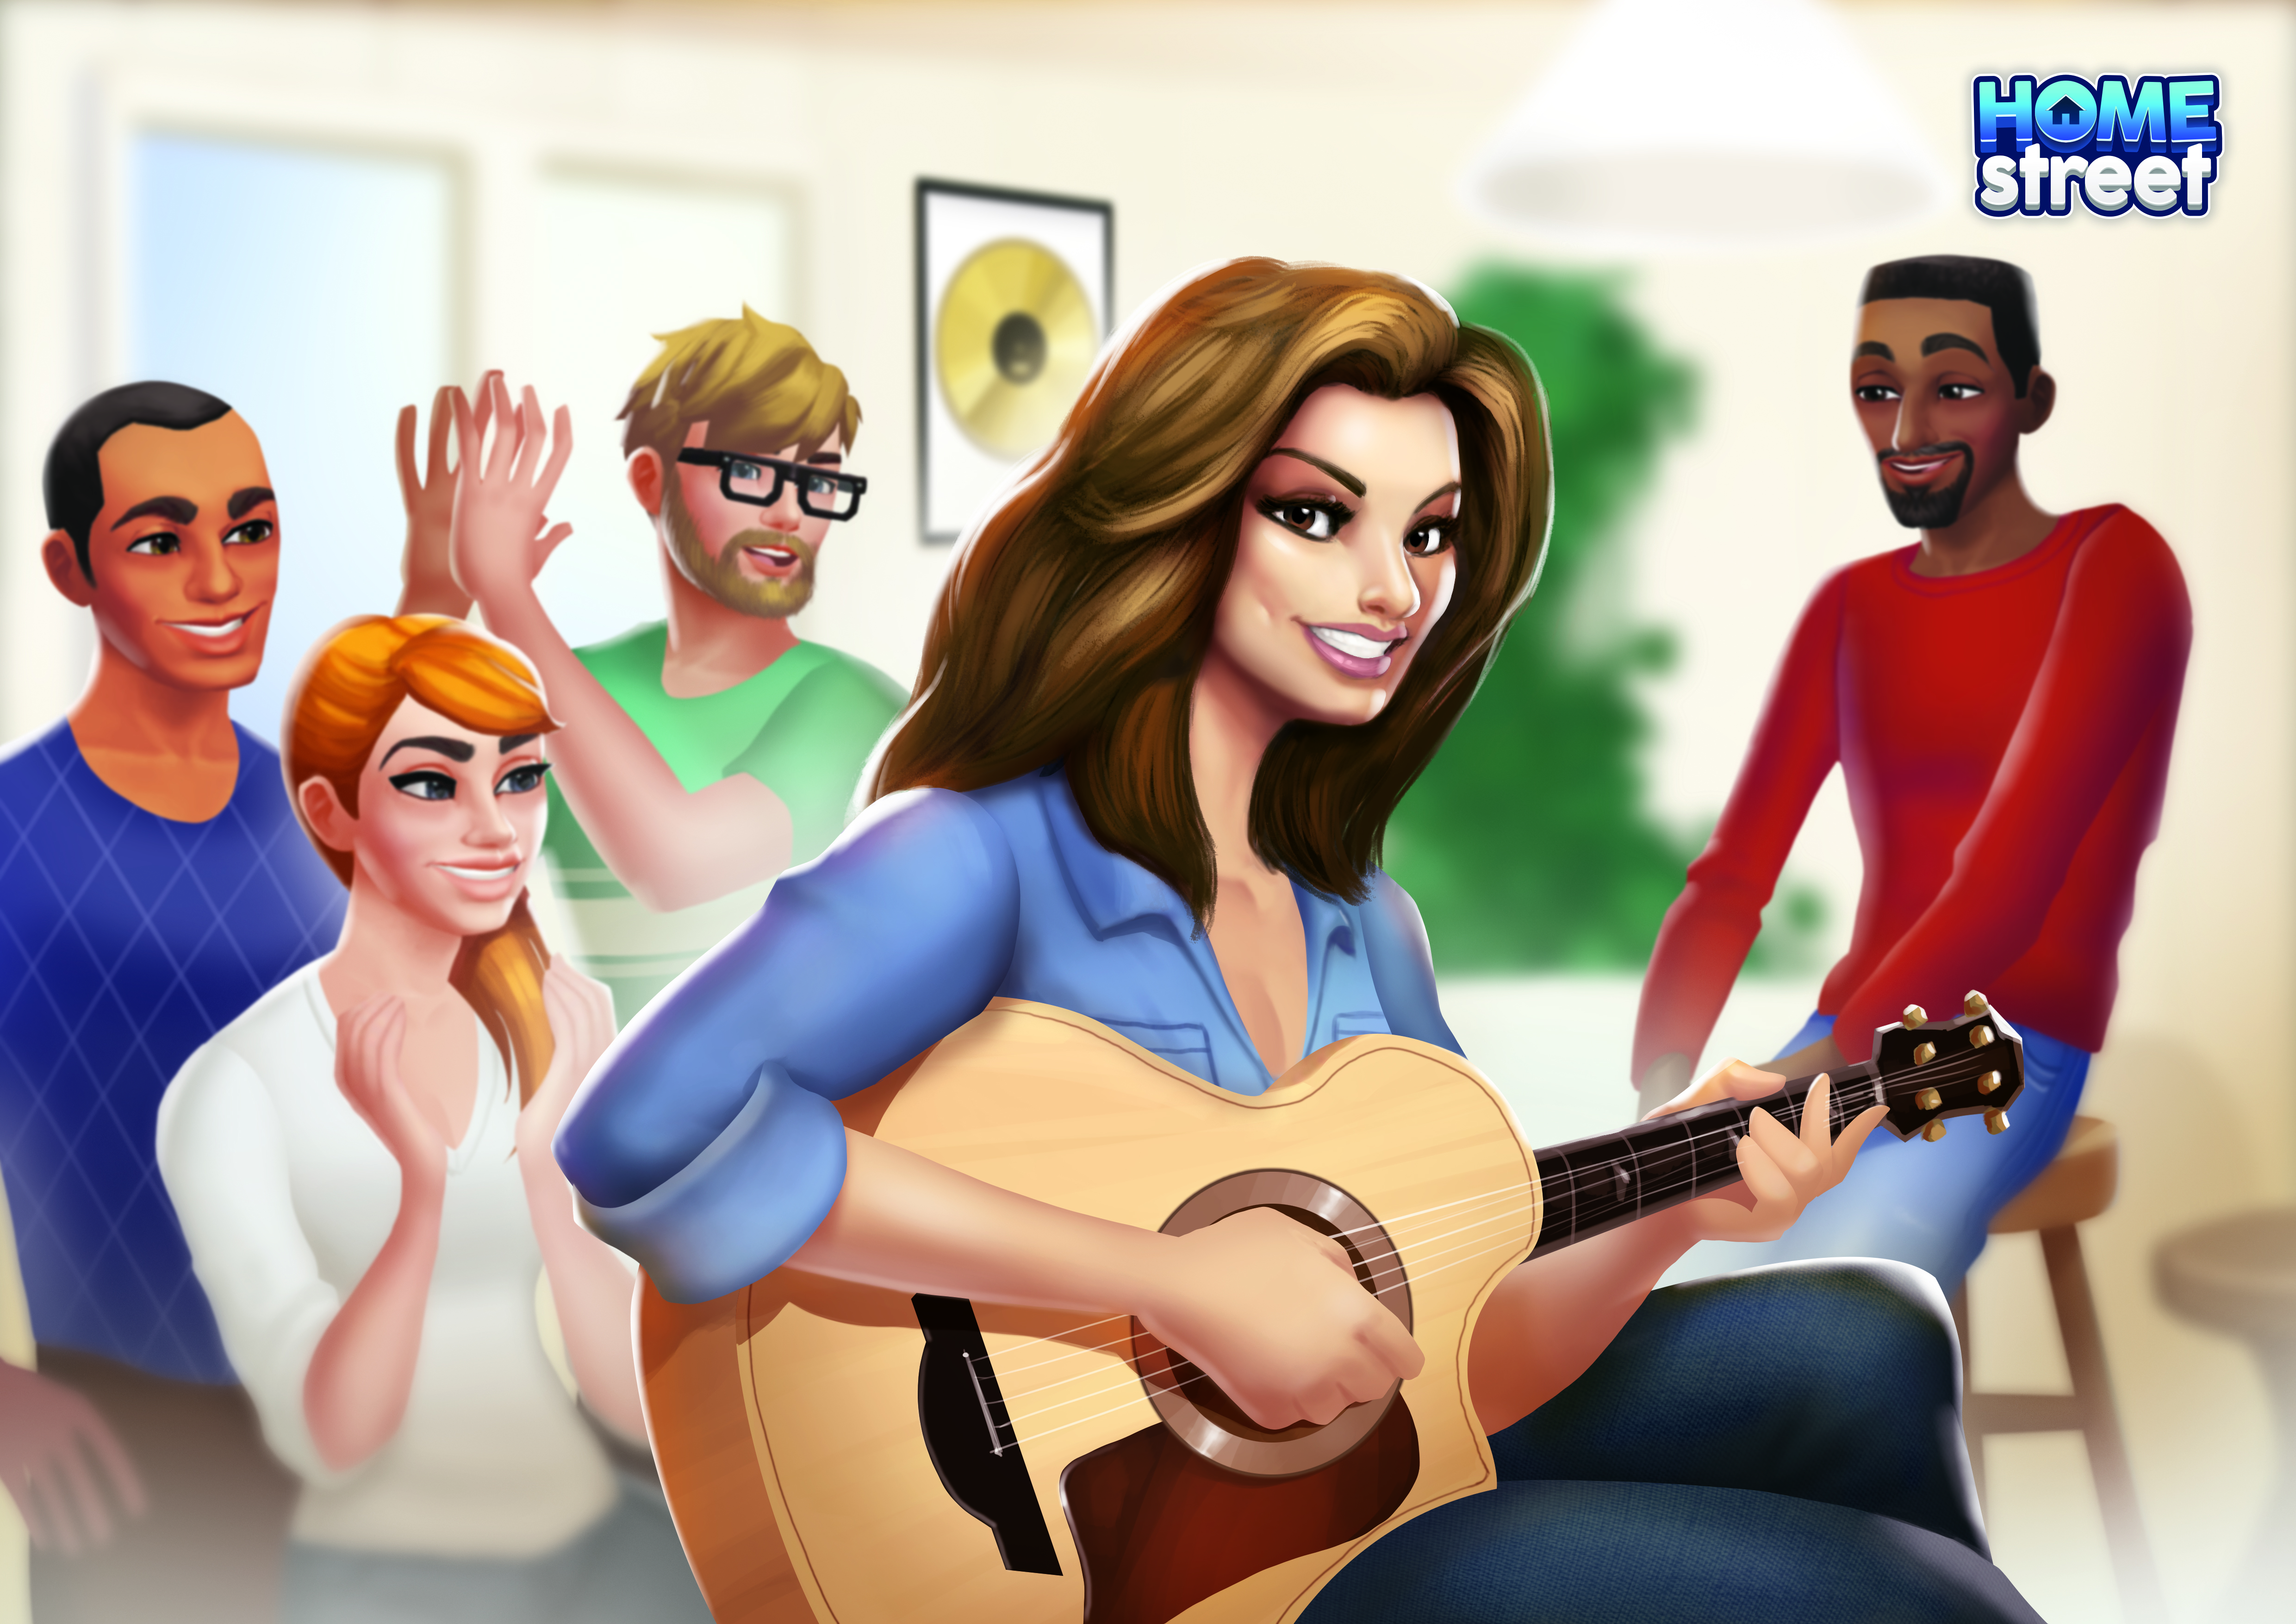 Shania Twain appears as guest character in Home Street mobile game